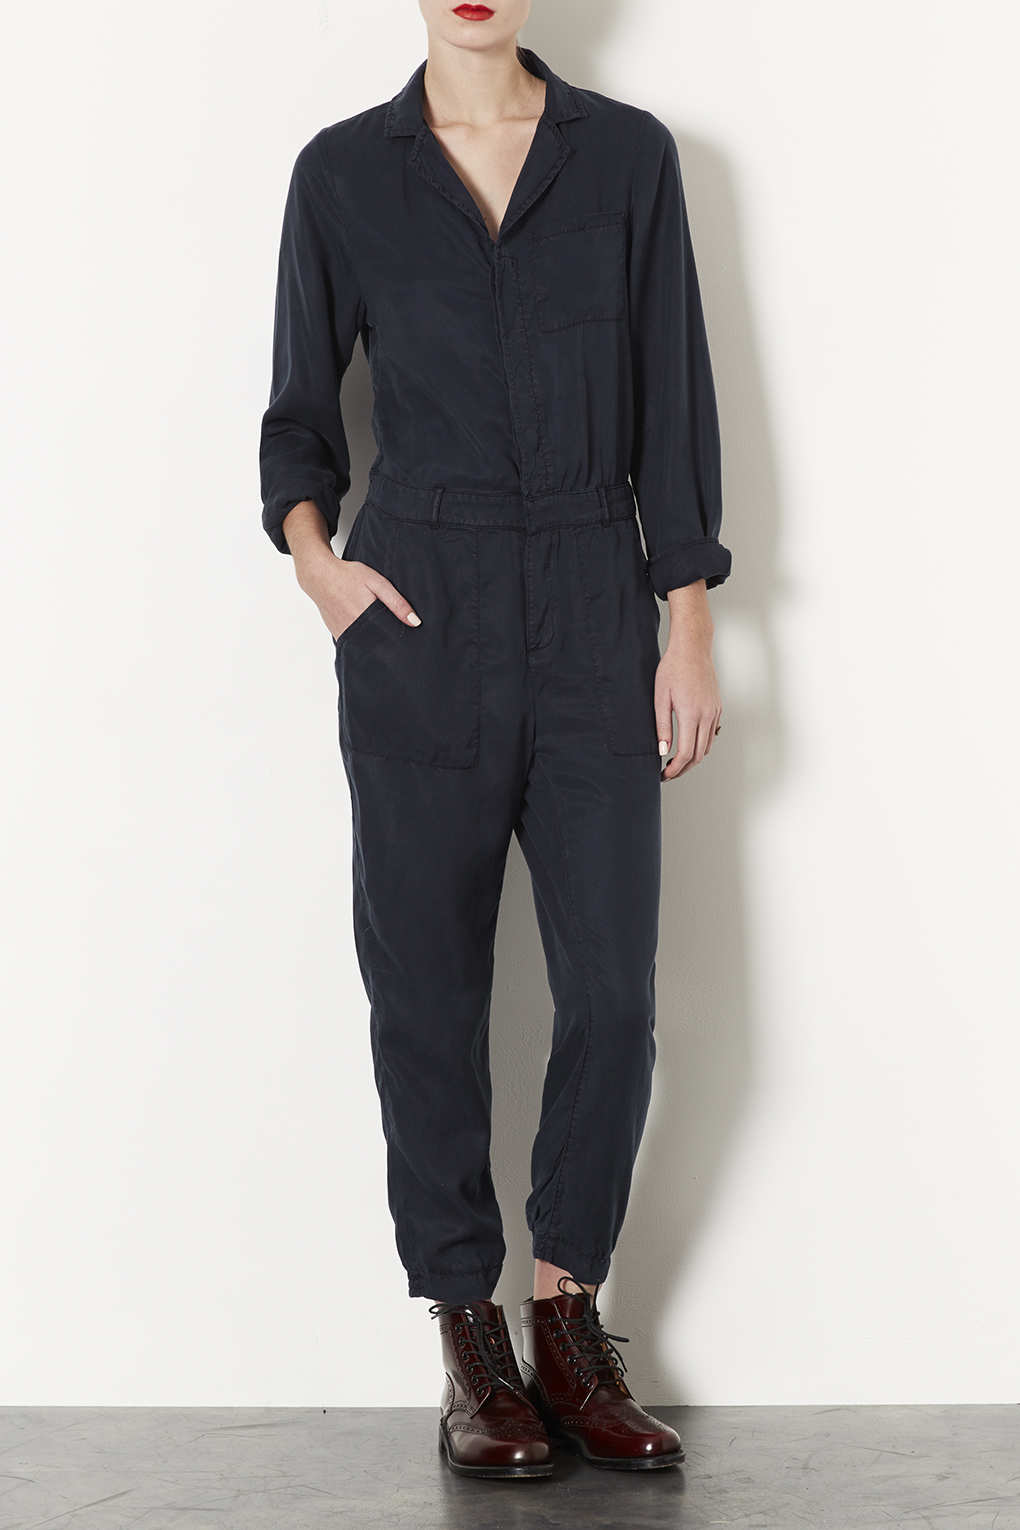 Topshop Casual Boiler Suit In Blue Lyst